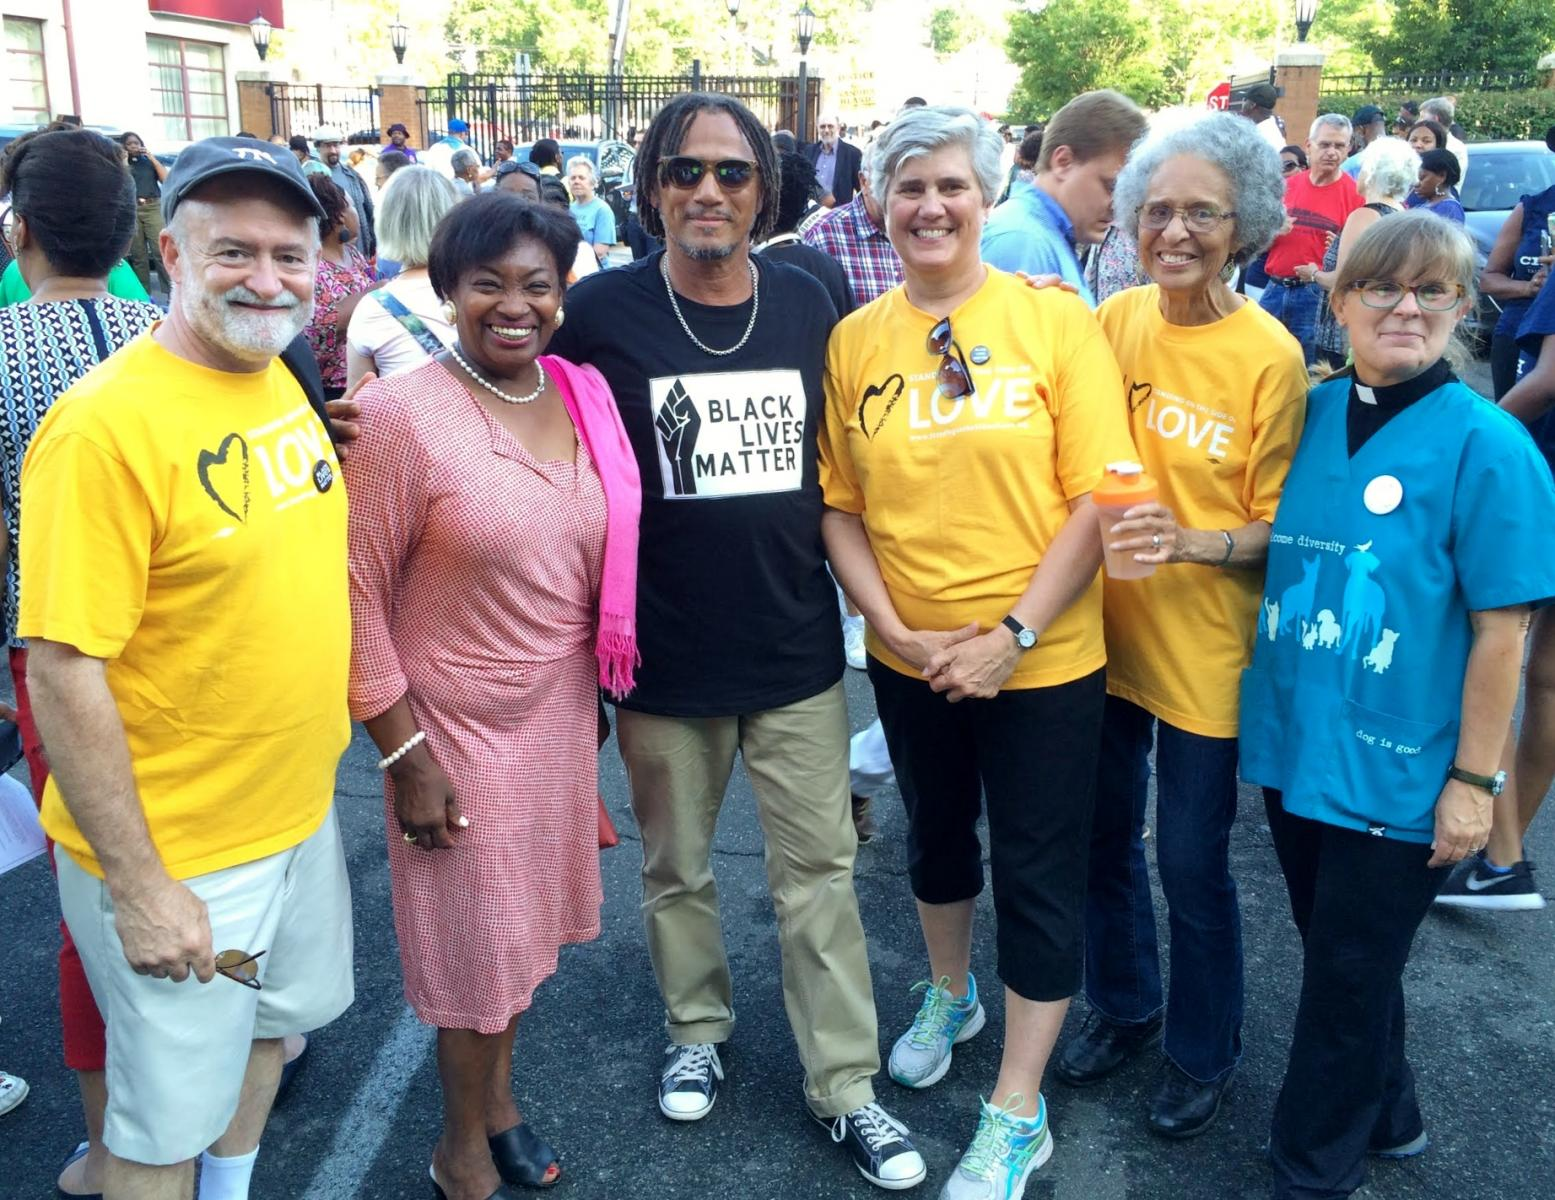 Members of CUUC with Senator Andrea Stewart-Cousins at Justice March in White Plains, NY July 14, 2016